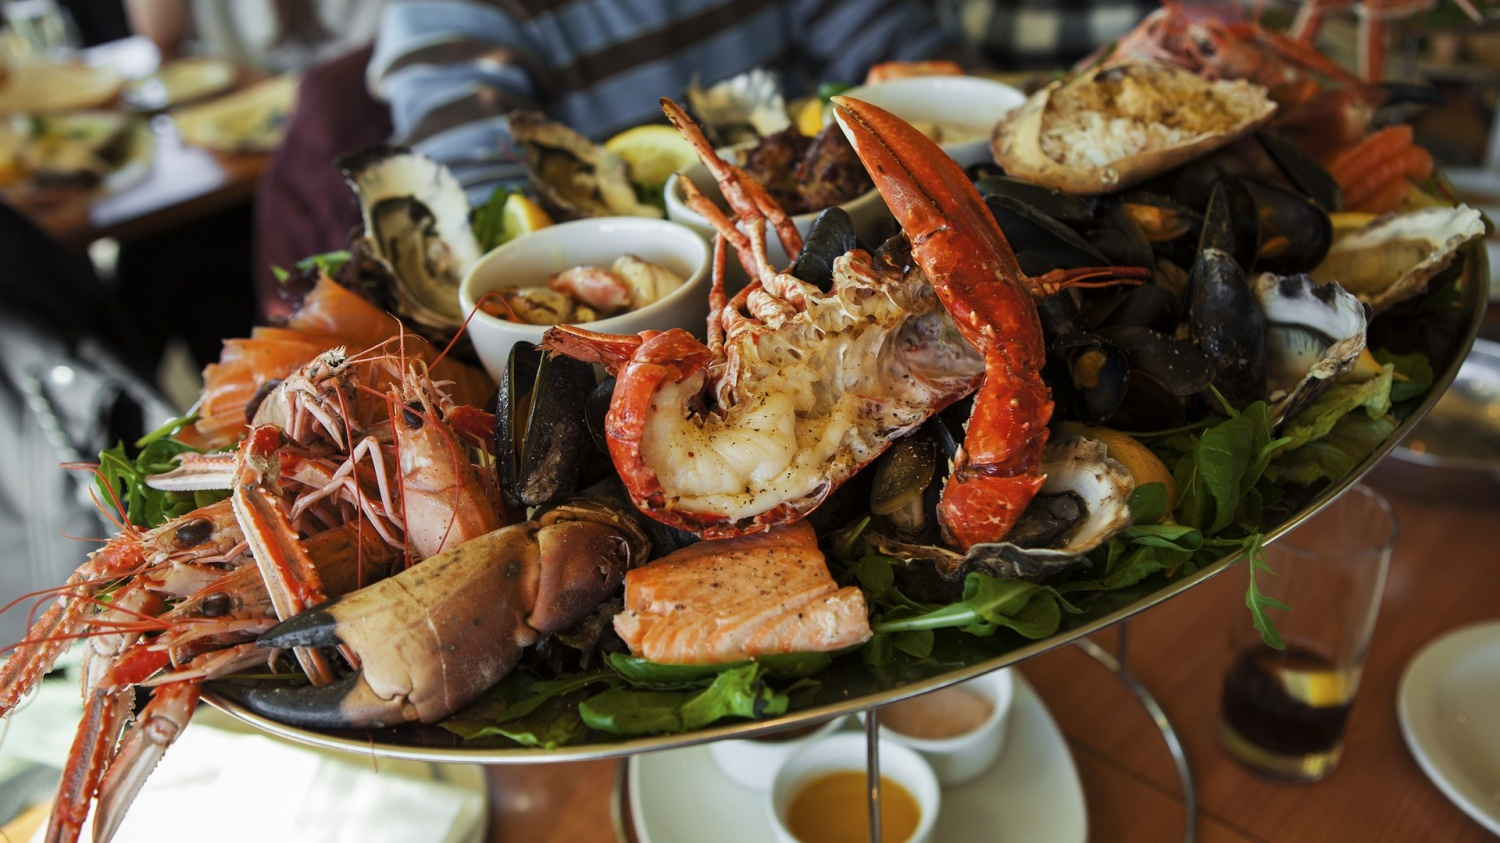 How to Safely Store Seafood at Your Restaurant